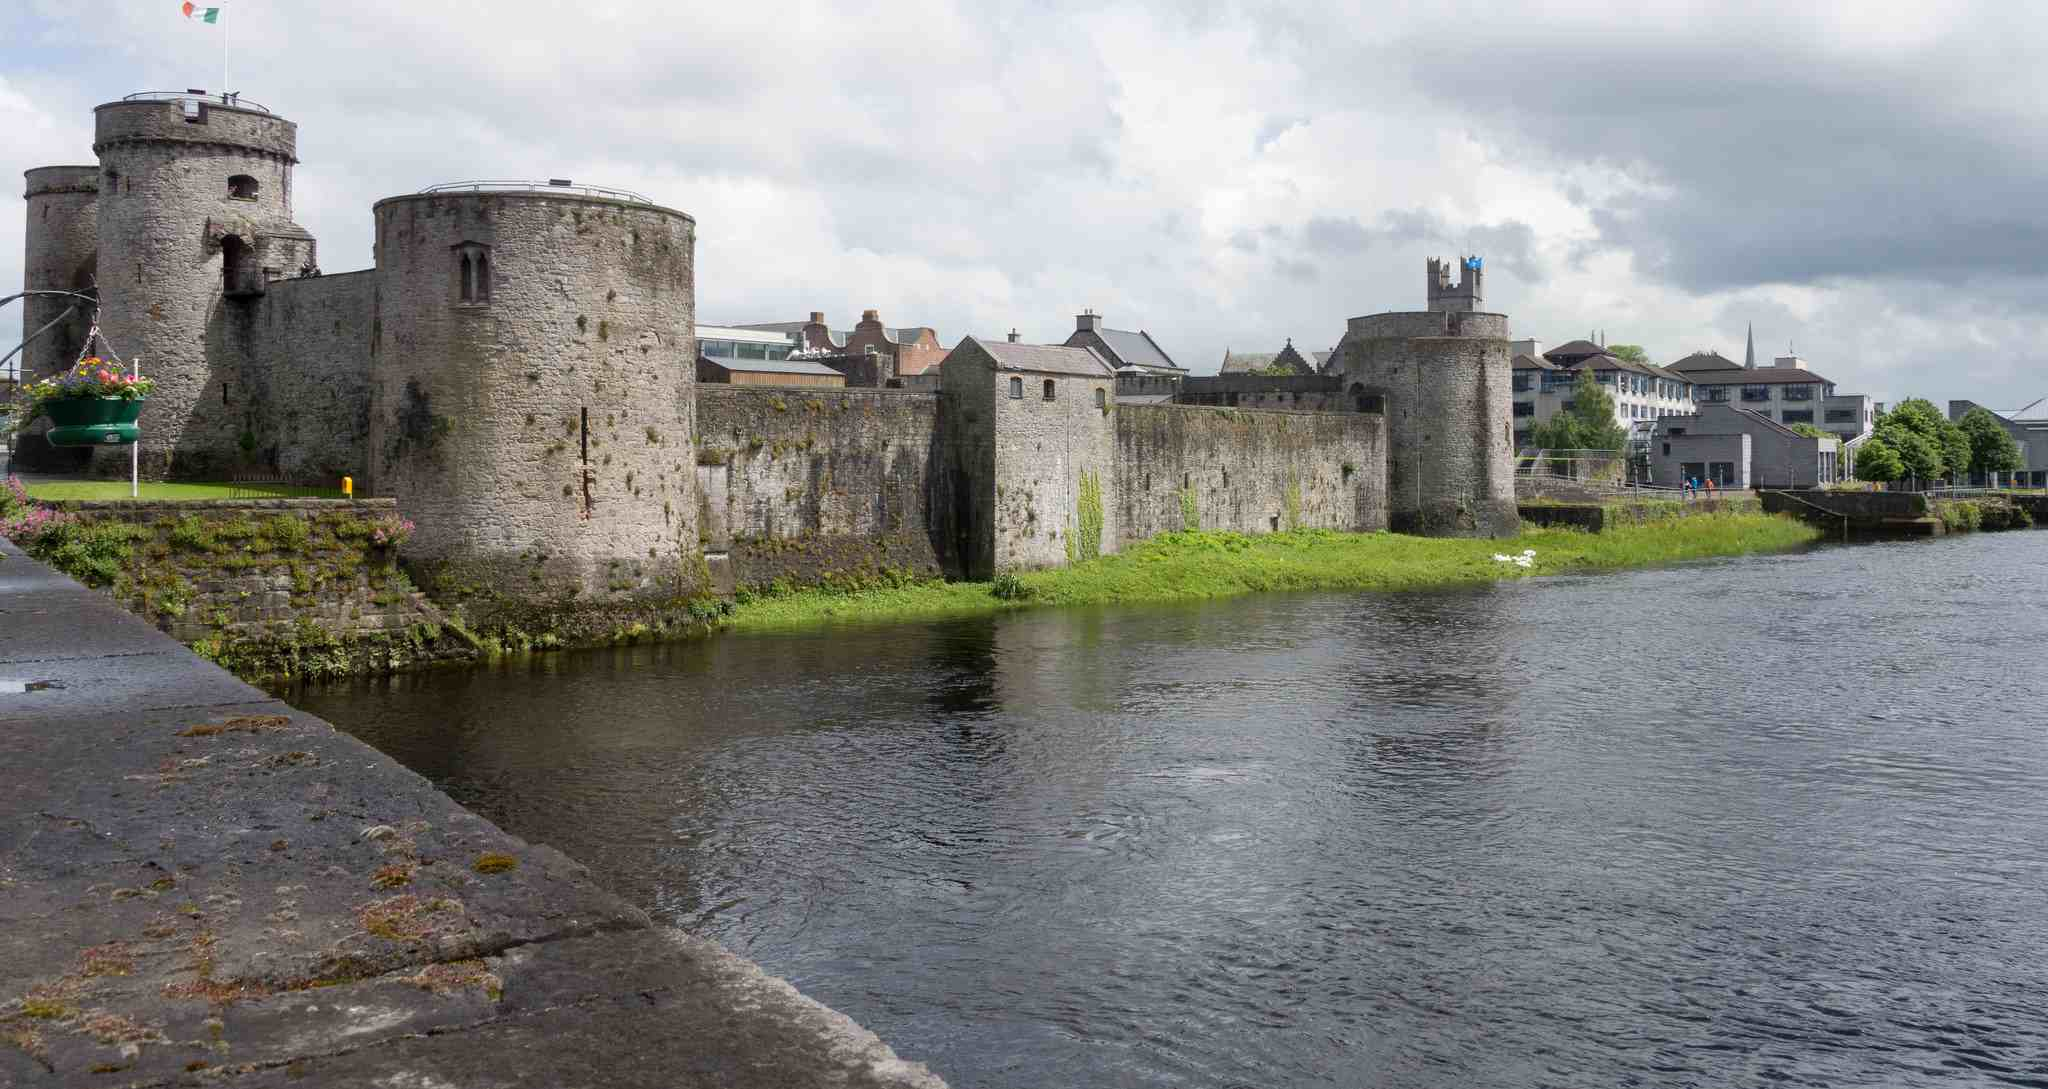 King John's Castle on the banks of the Shannon in Limerick Ireland